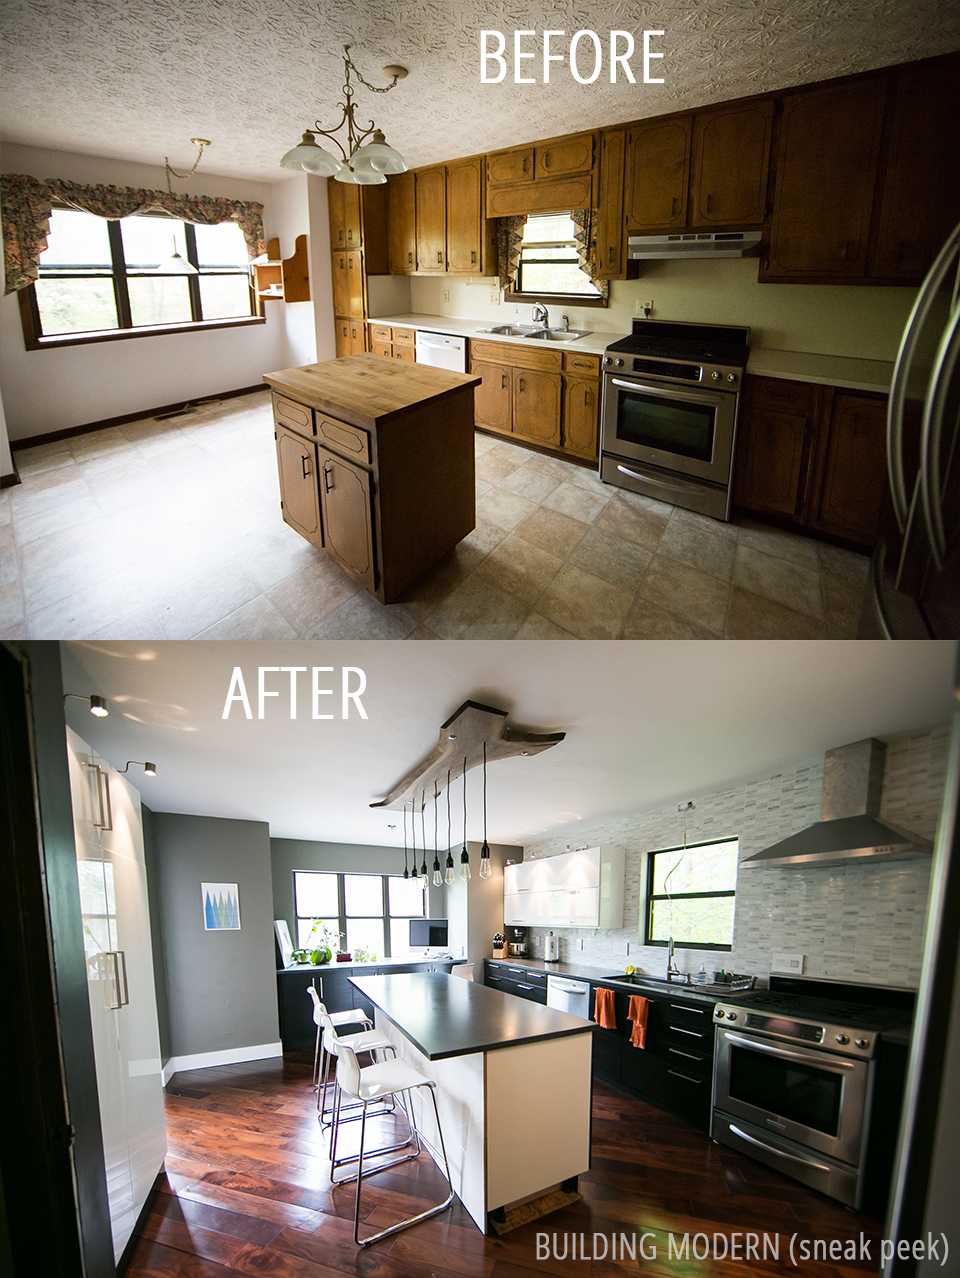 Modern DIY Kitchen Before and After Sneak Peak for Building Modern